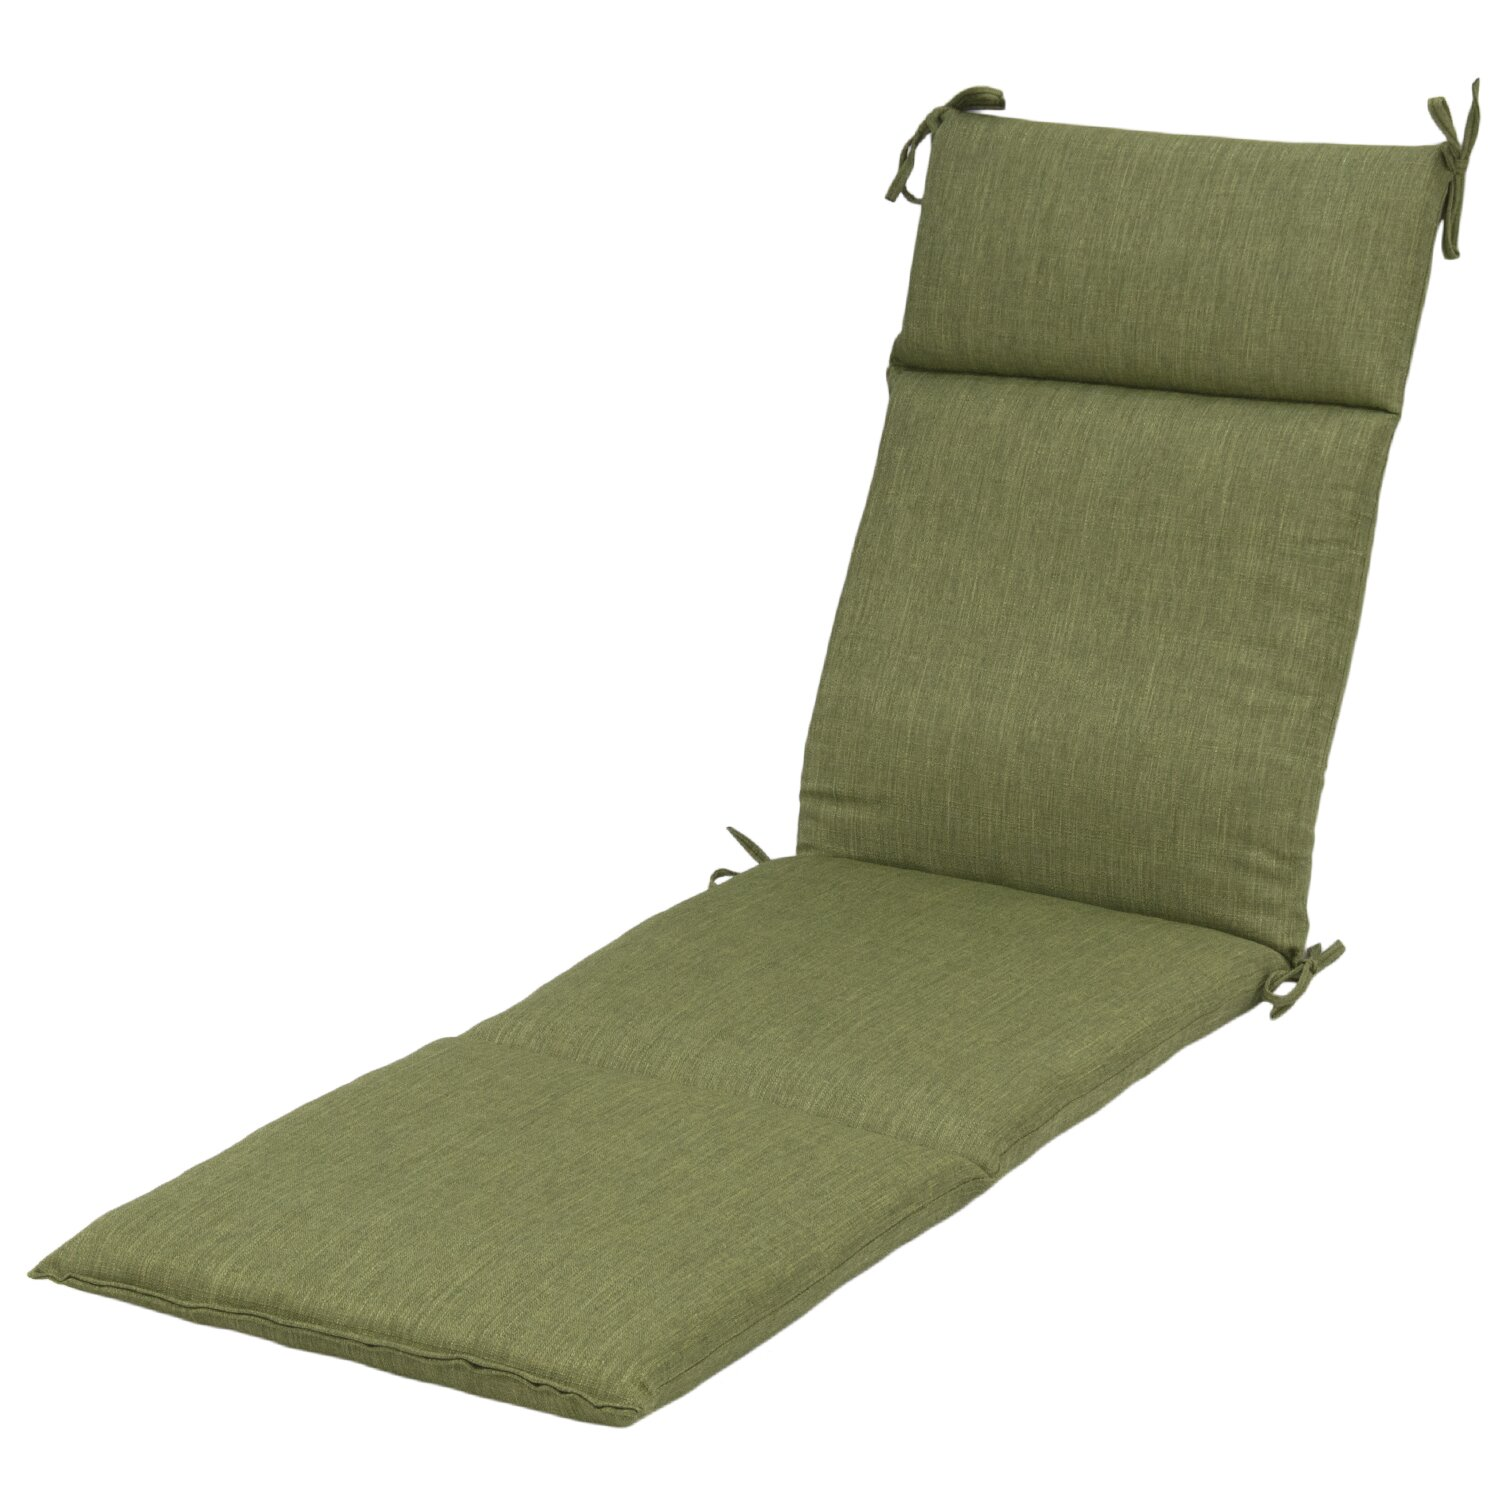 Outdoor chaise lounge cushion wayfair for Chaise longue cushions